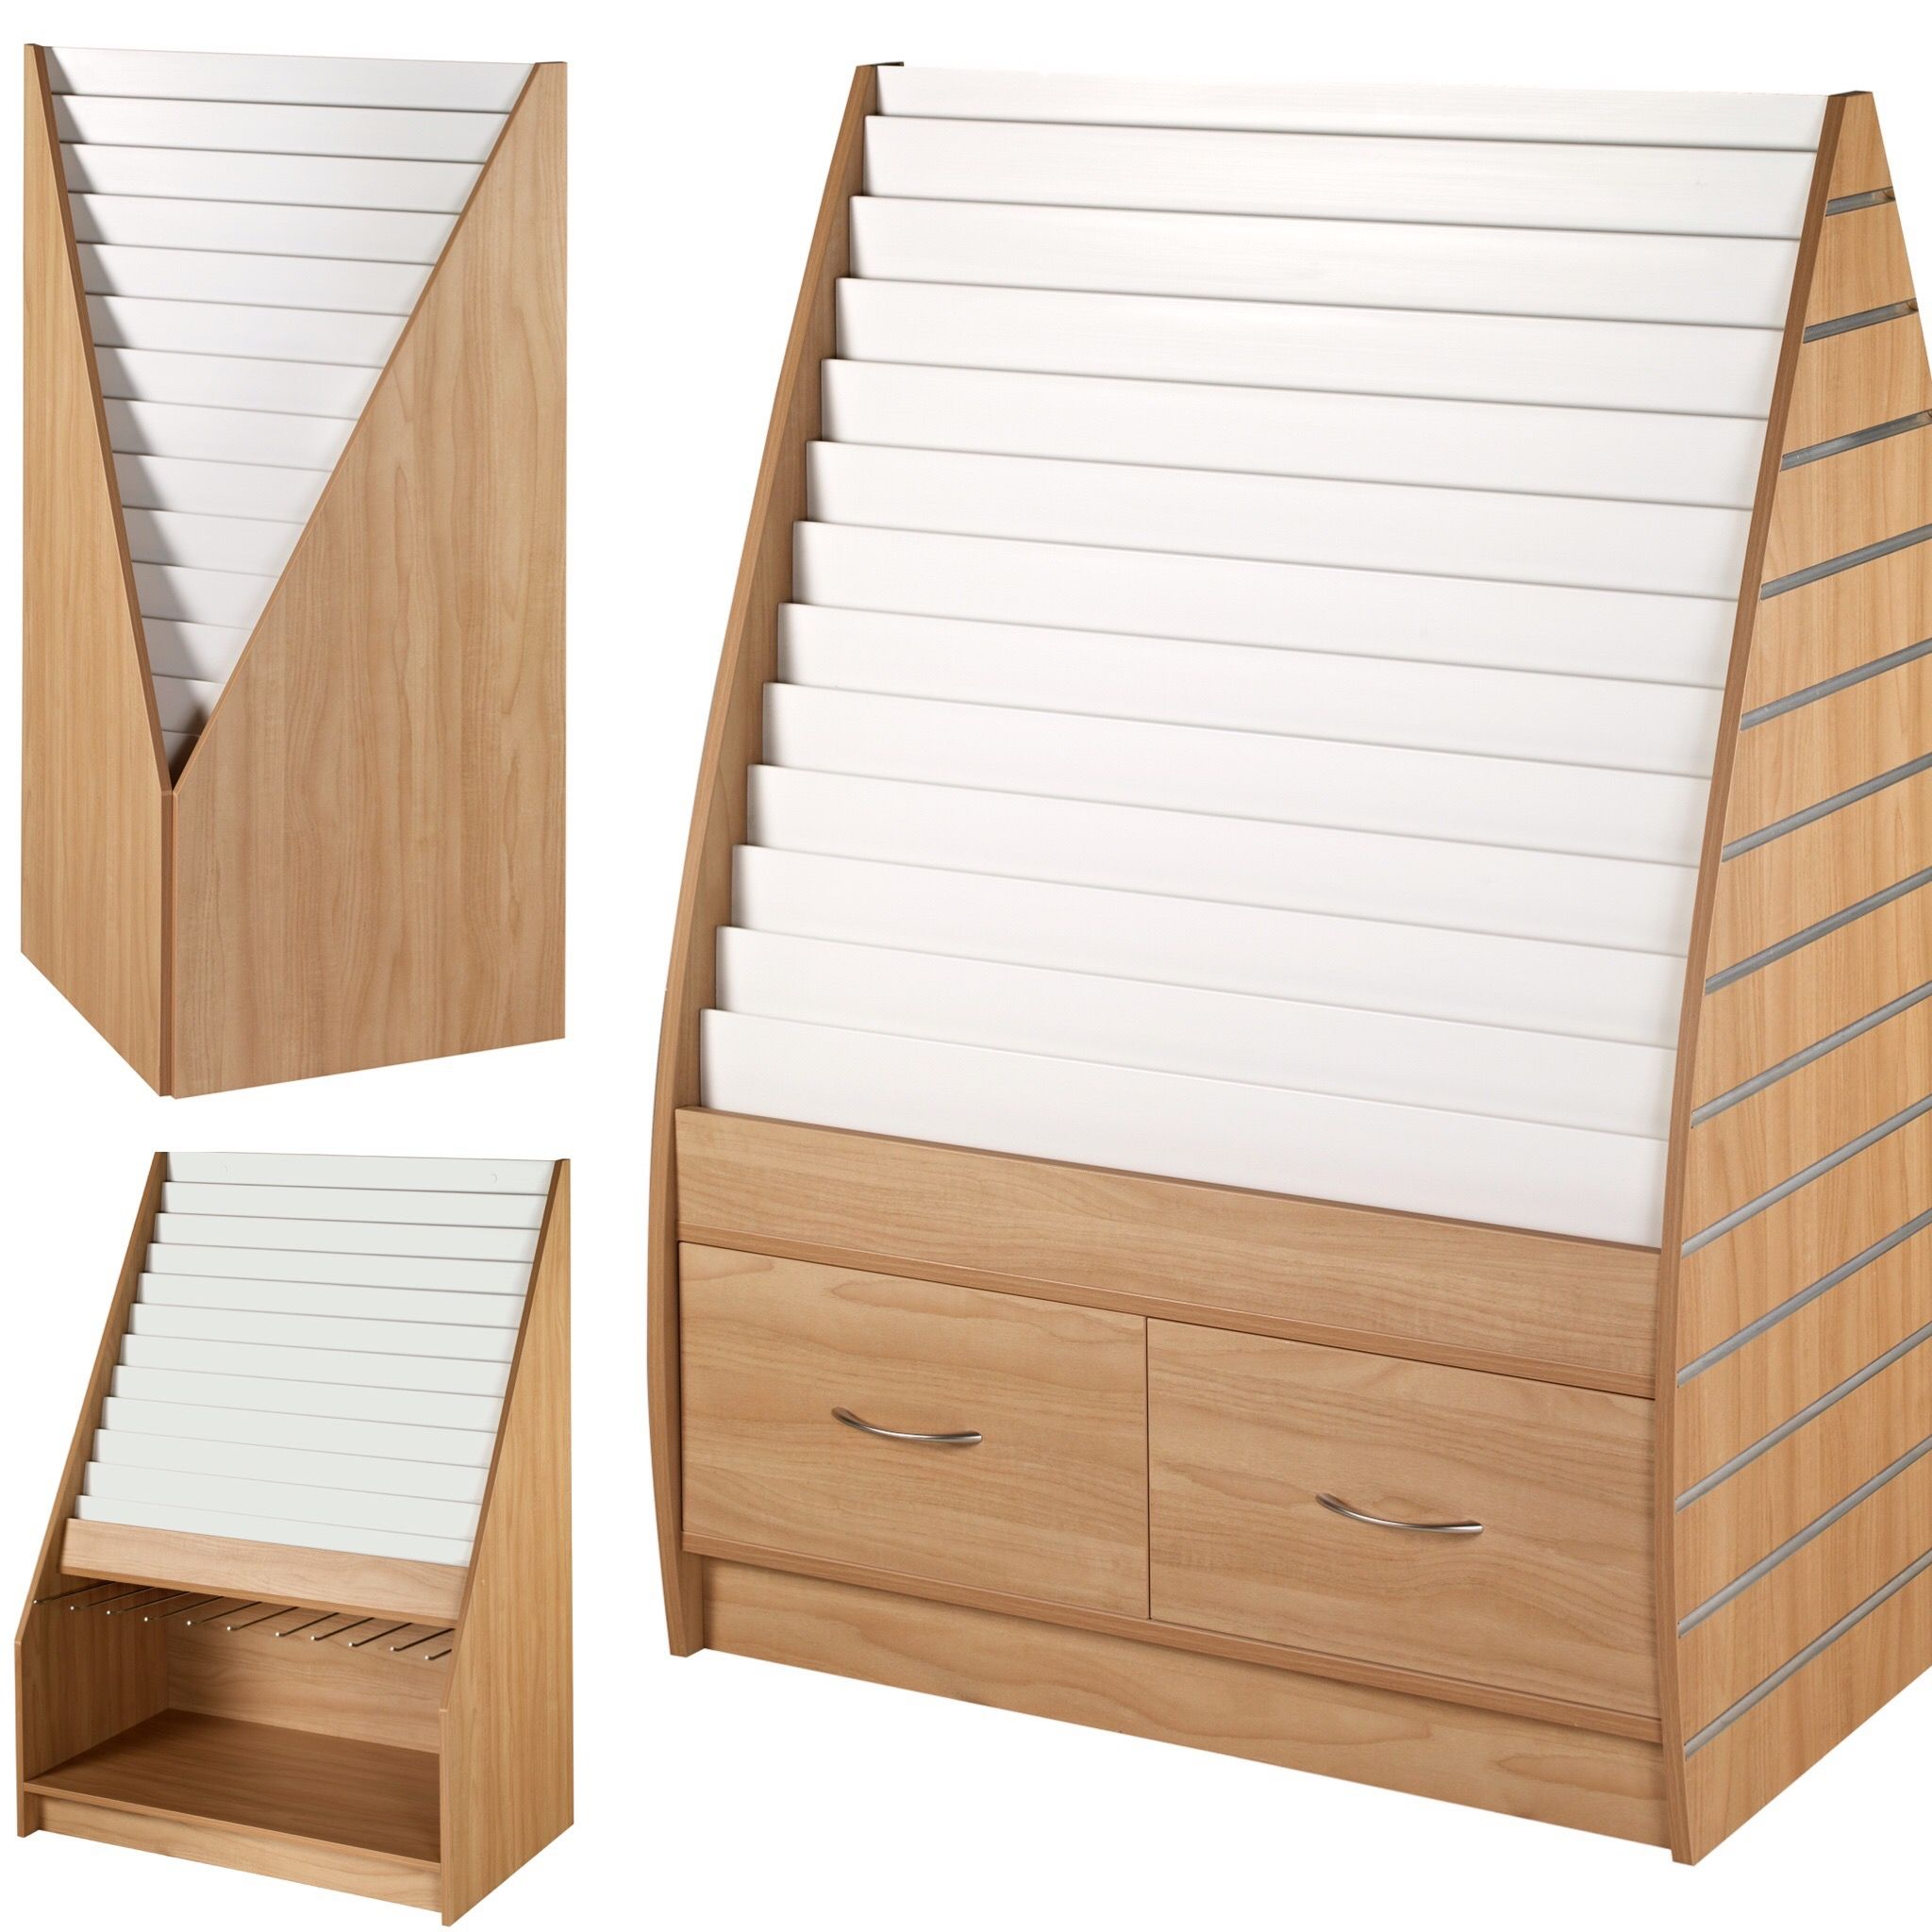 Card racks low cost quality card display stands choose your card racks low cost quality card display stands choose your preferred colour or wood finish and let us create the perfect greeting card stands to suit m4hsunfo